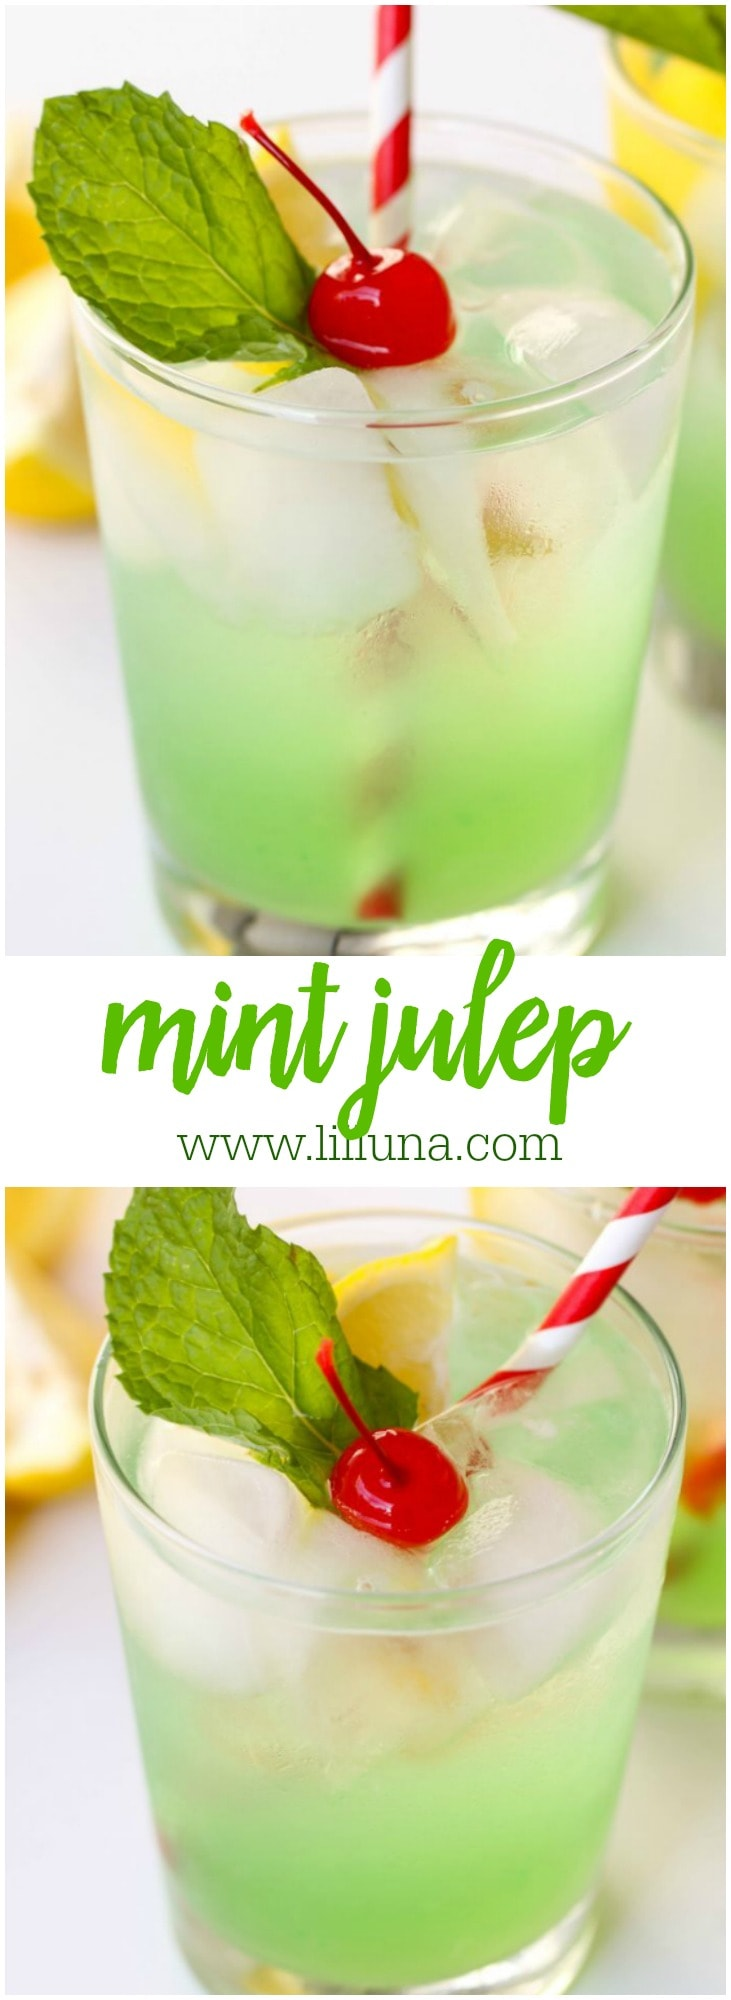 Disneyland's Copycat Mint Julep recipe - a non-alcoholic drink that is refreshing and DELICIOUS!! Recipe on { lilluna.com } Made with lemonade concentrate, creme de menthe syrup, lime juice, sugar, and club soda - topped with mint leaves and cherries!